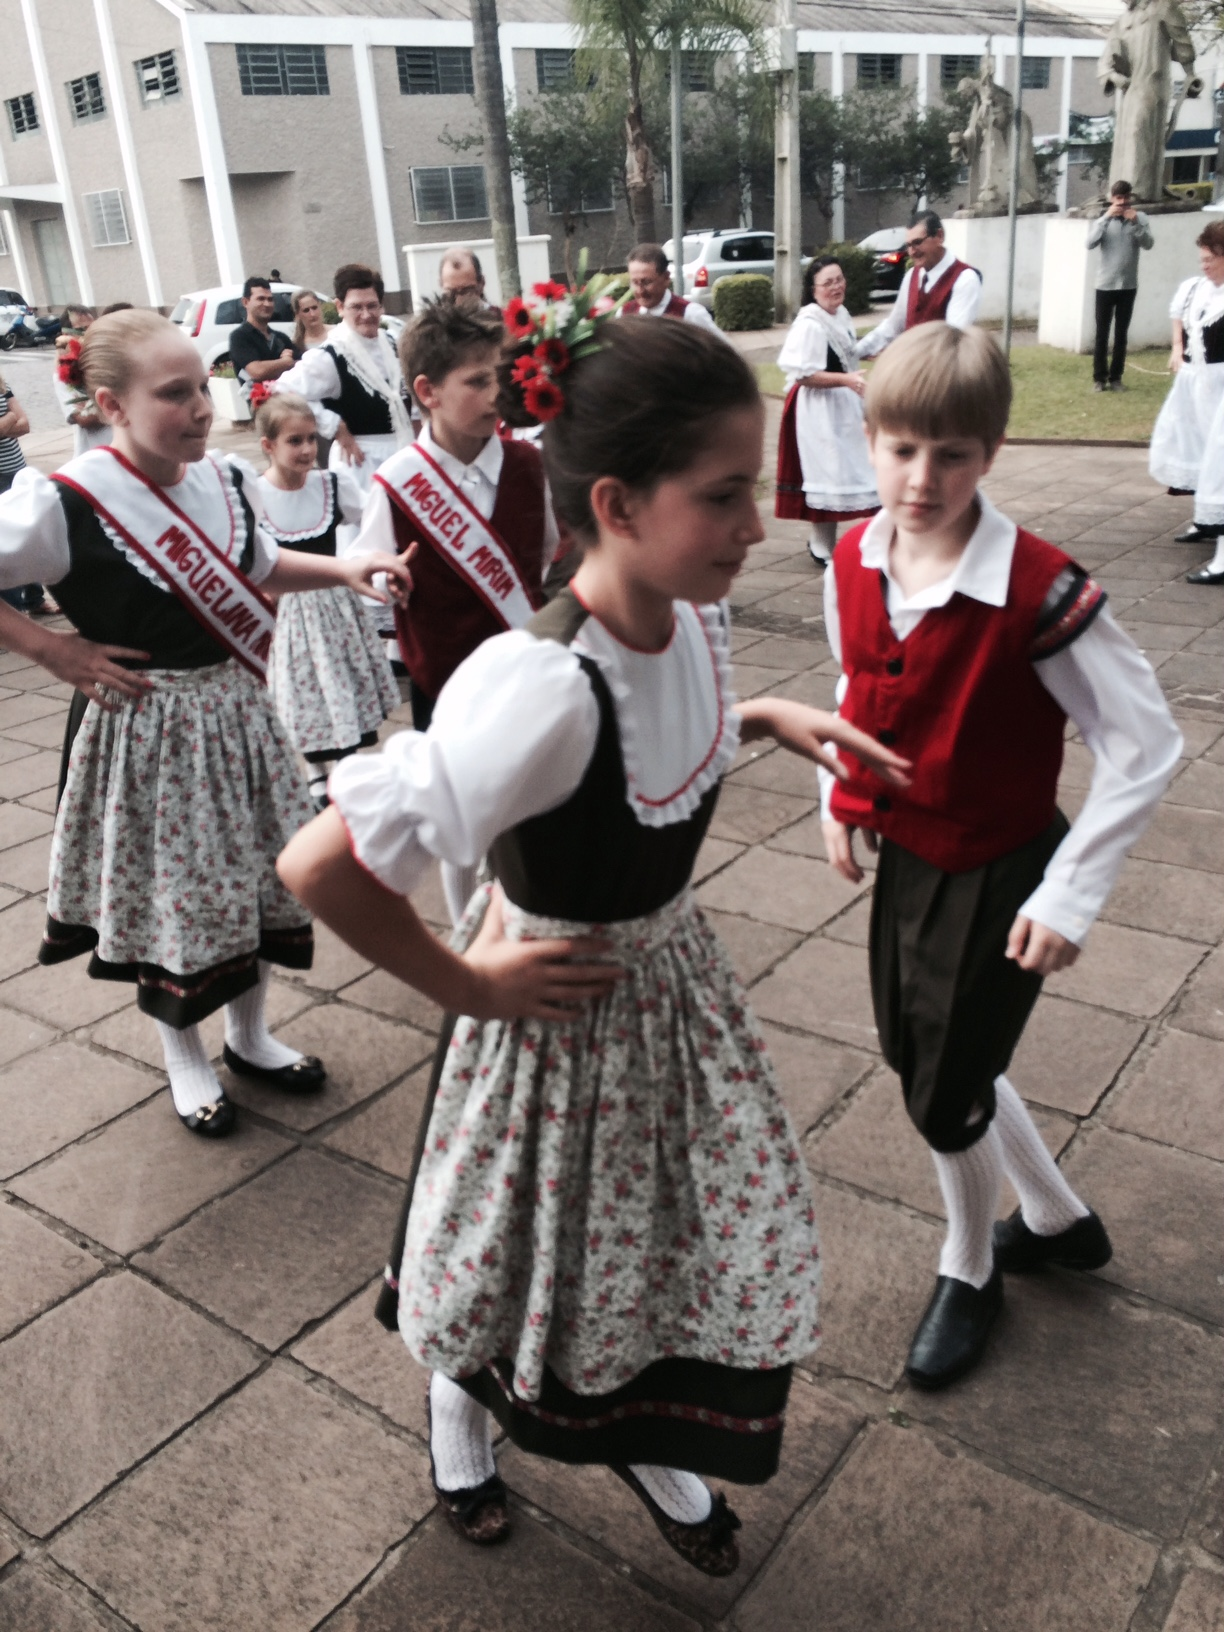 Kinder in deutscher Tracht